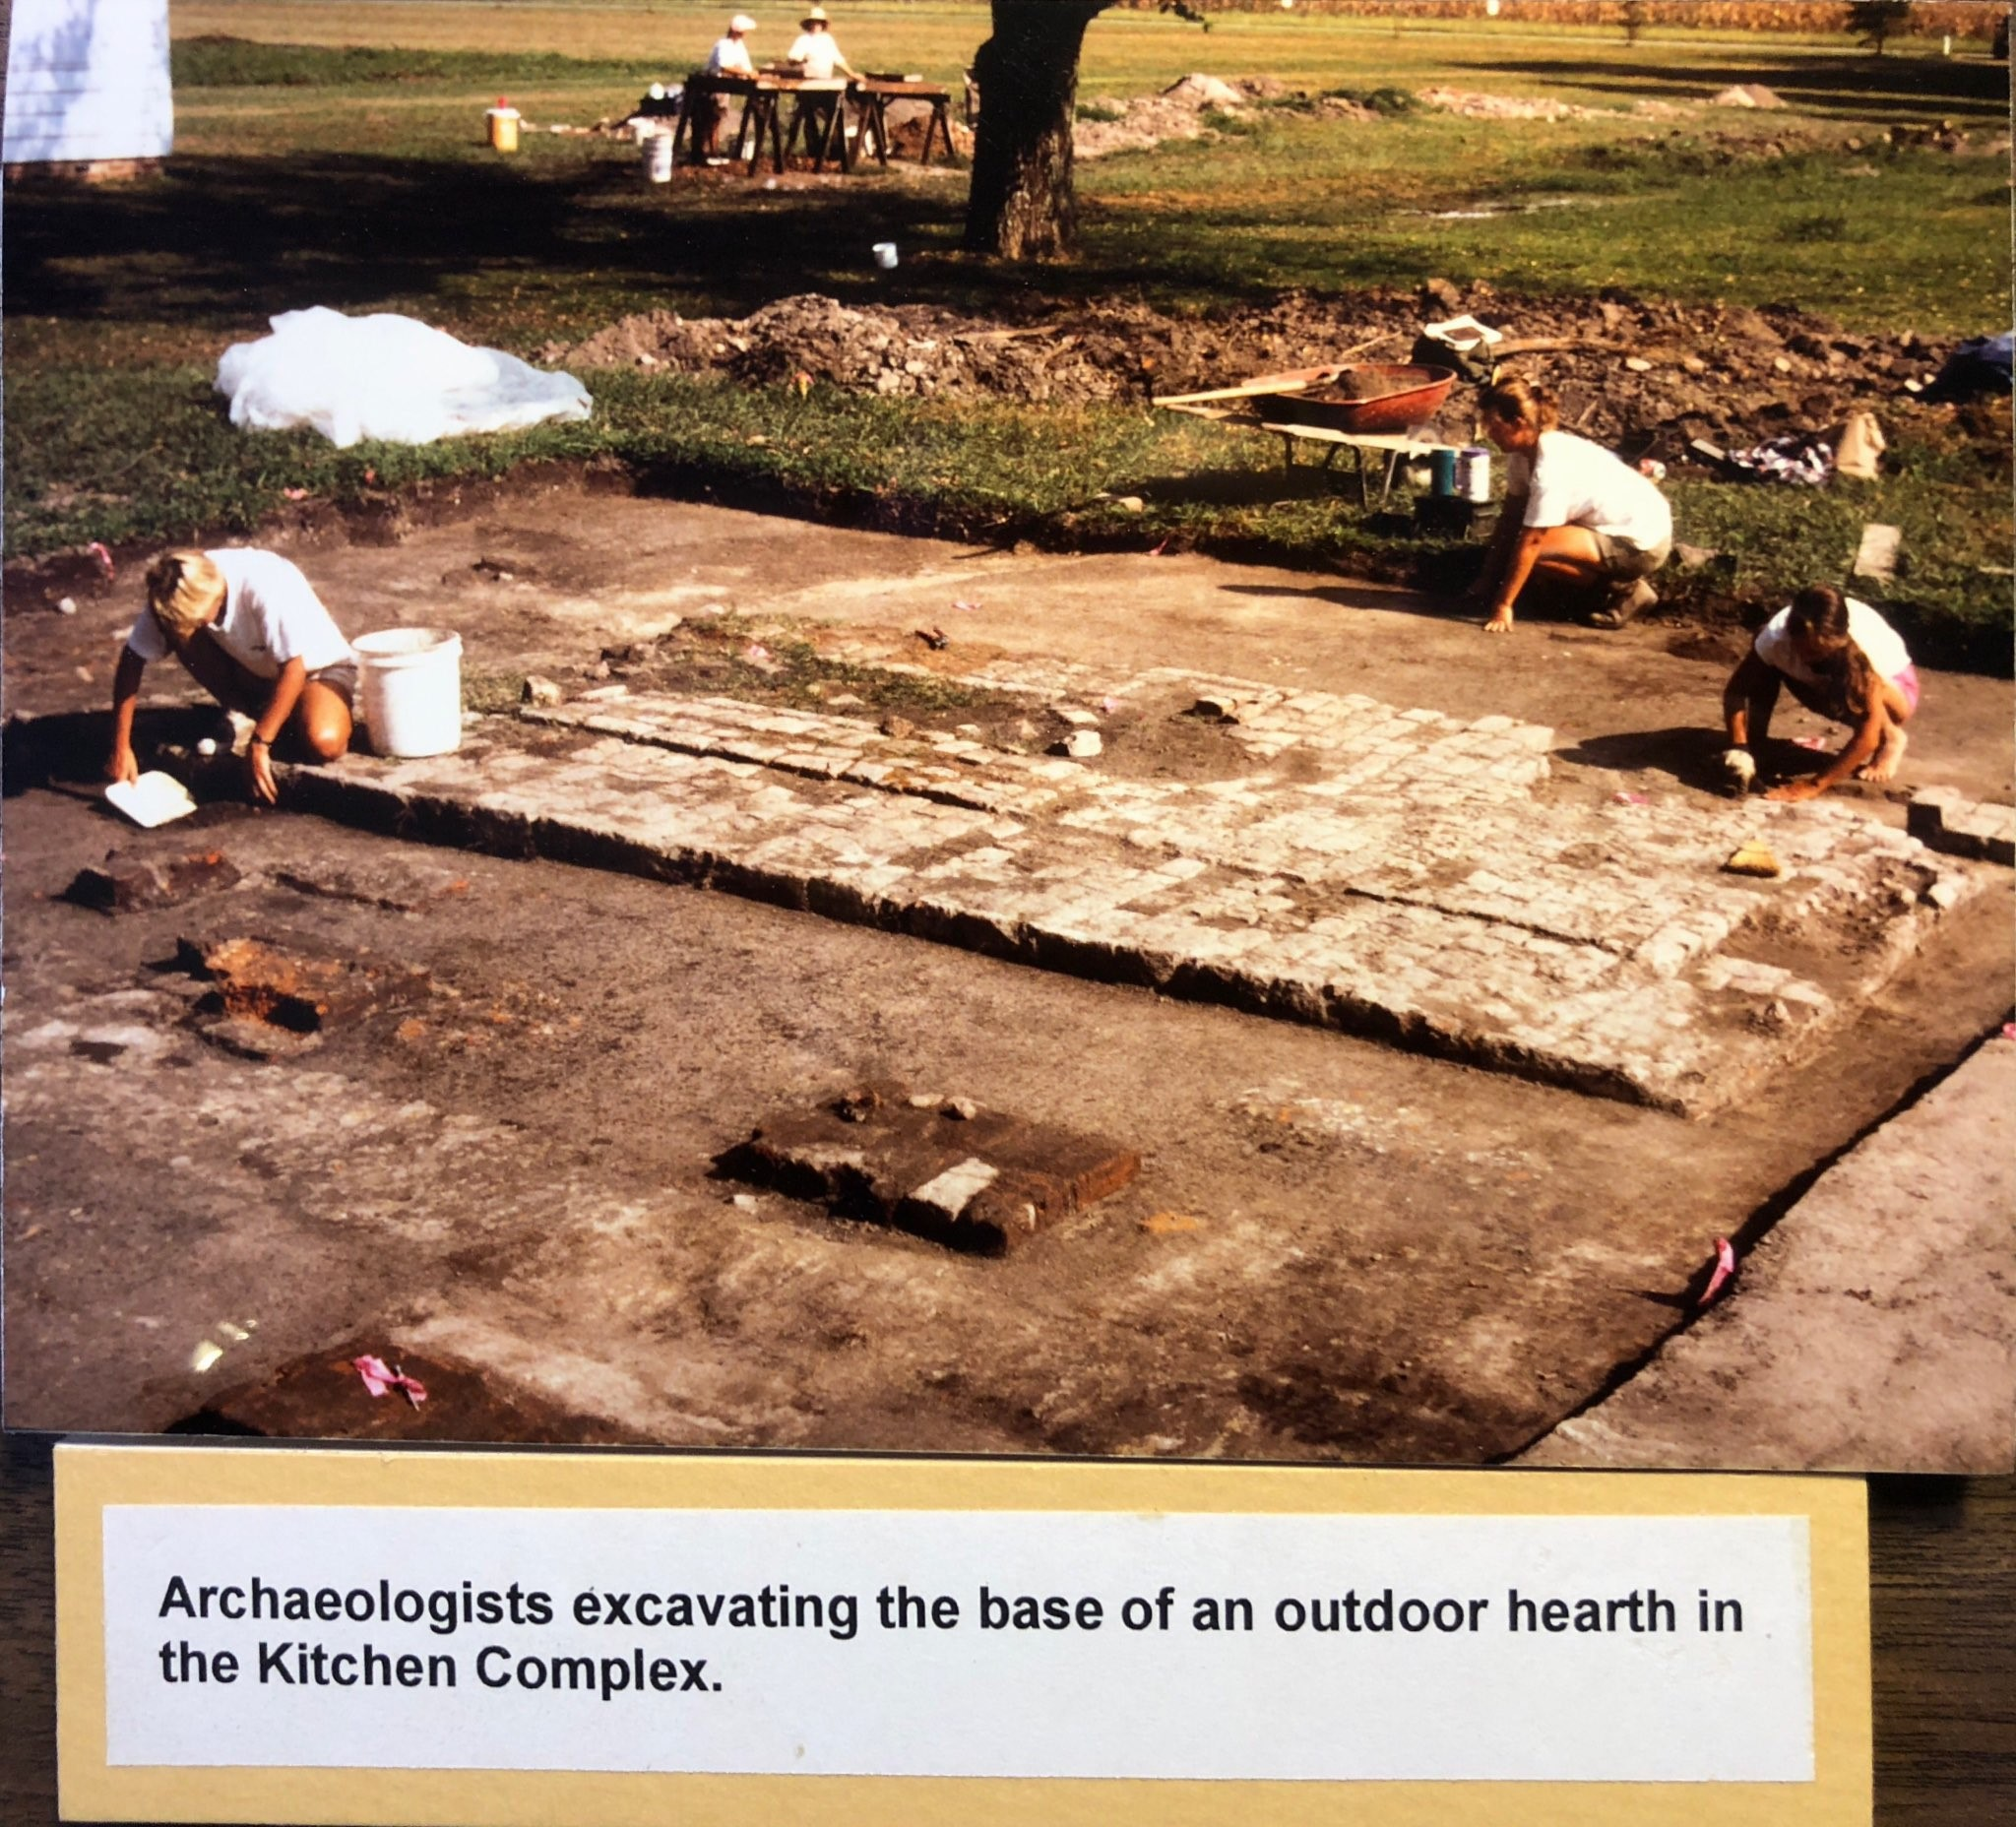 Archaeologists excavating the base of an outdoor hearth in the Enslaved Kitchen Complex in 1994.